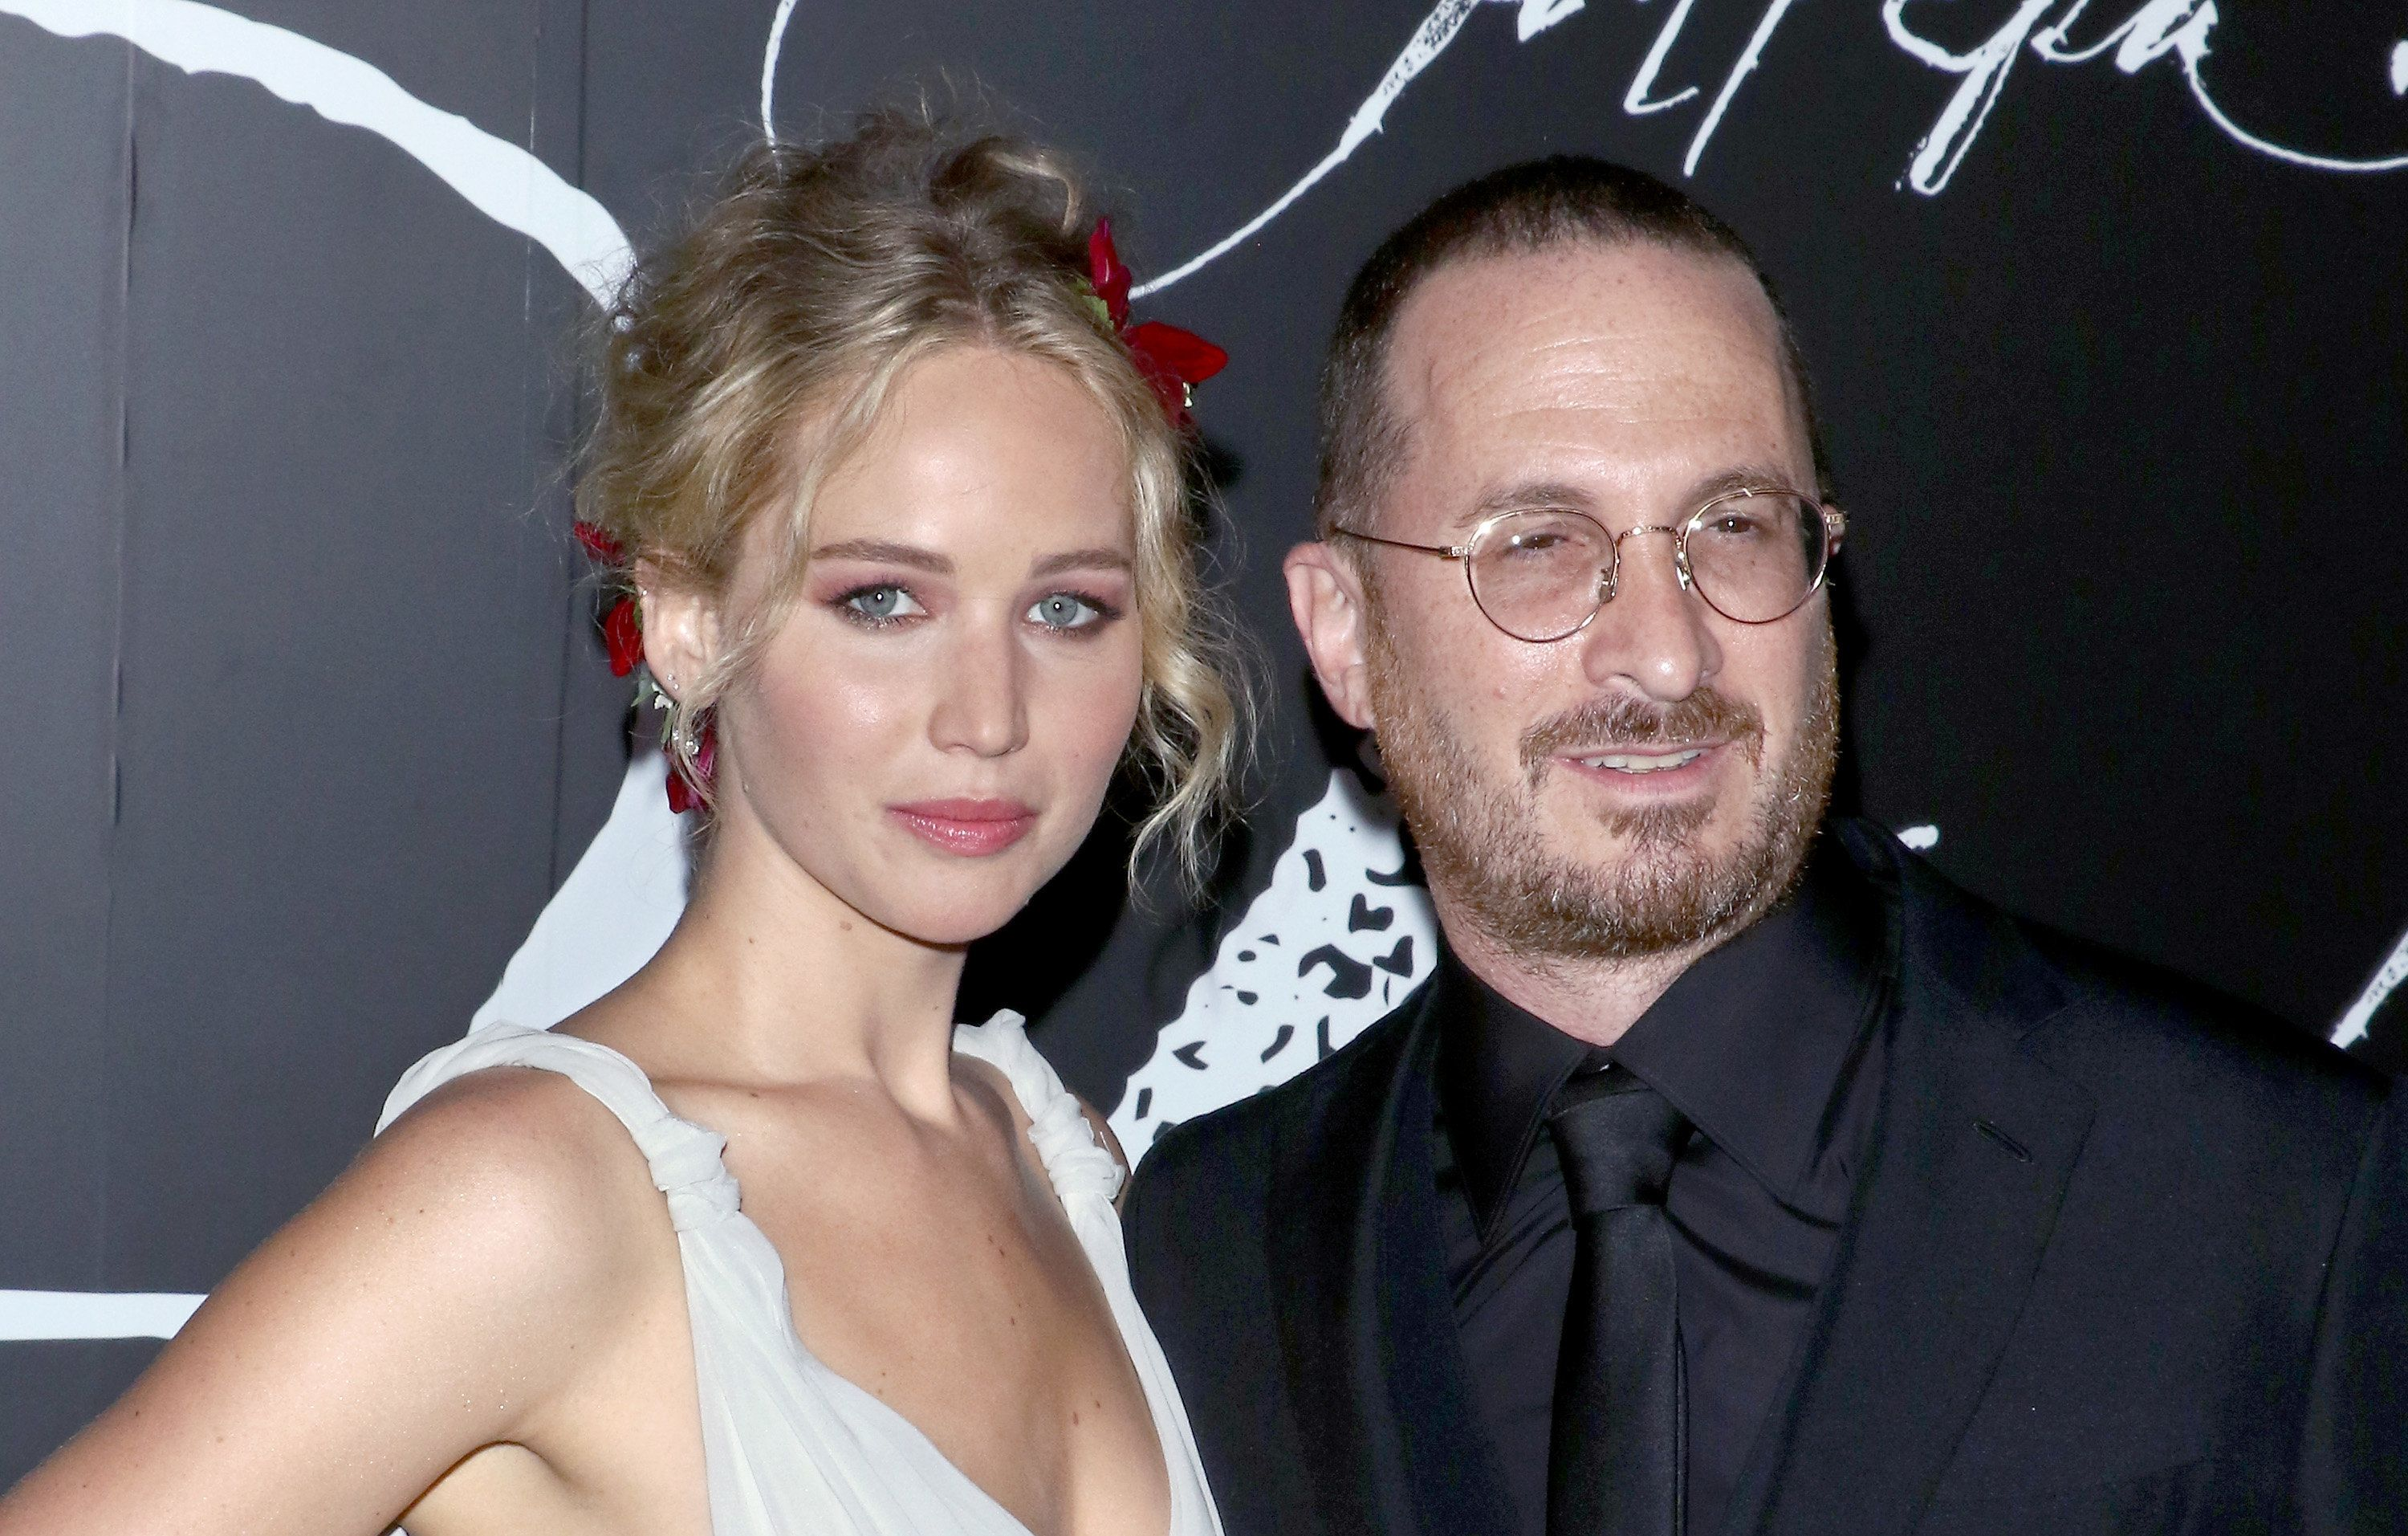 NEW YORK, NY - SEPTEMBER 13:  Actress Jennifer Lawrence and director Darren Aronofsky attend the 'mother!' New York premiere at Radio City Music Hall on September 13, 2017 in New York City.  (Photo by Jim Spellman/WireImage)